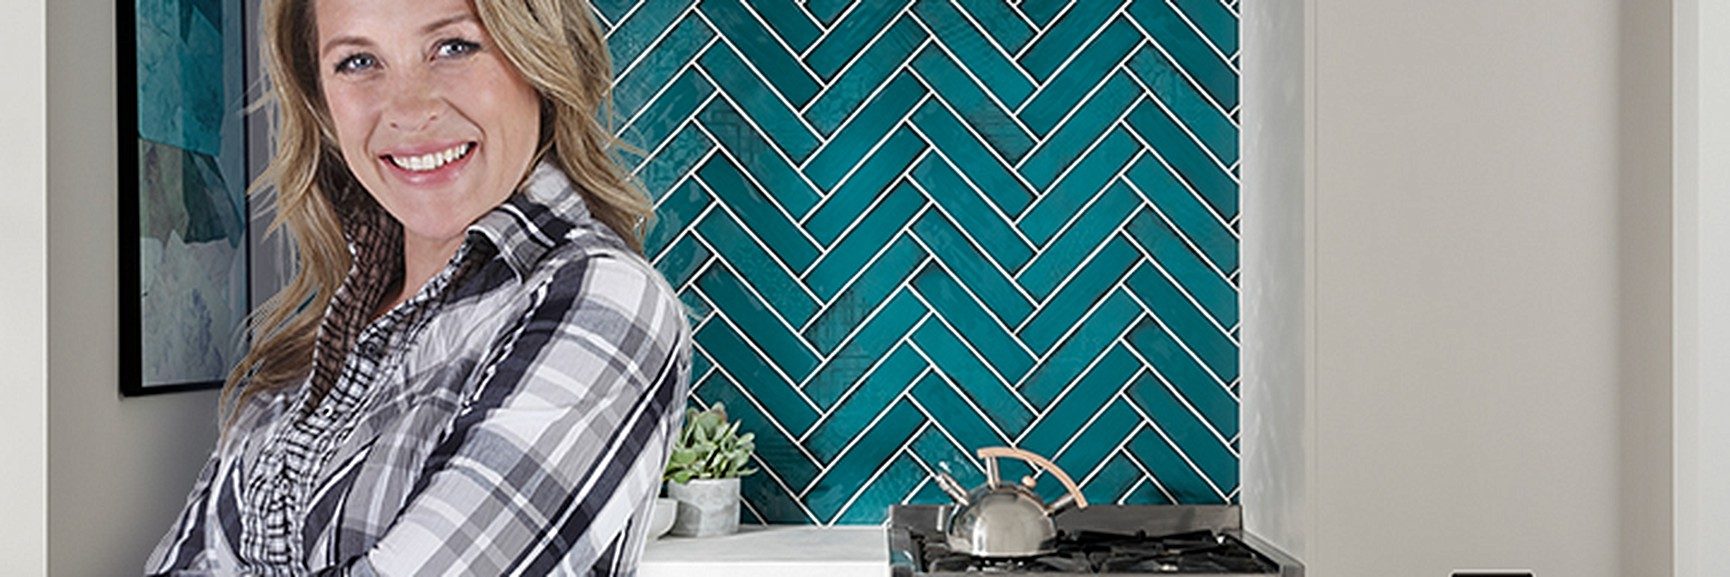 House Renovation Ideas With Sarah Beeny Topps Tiles